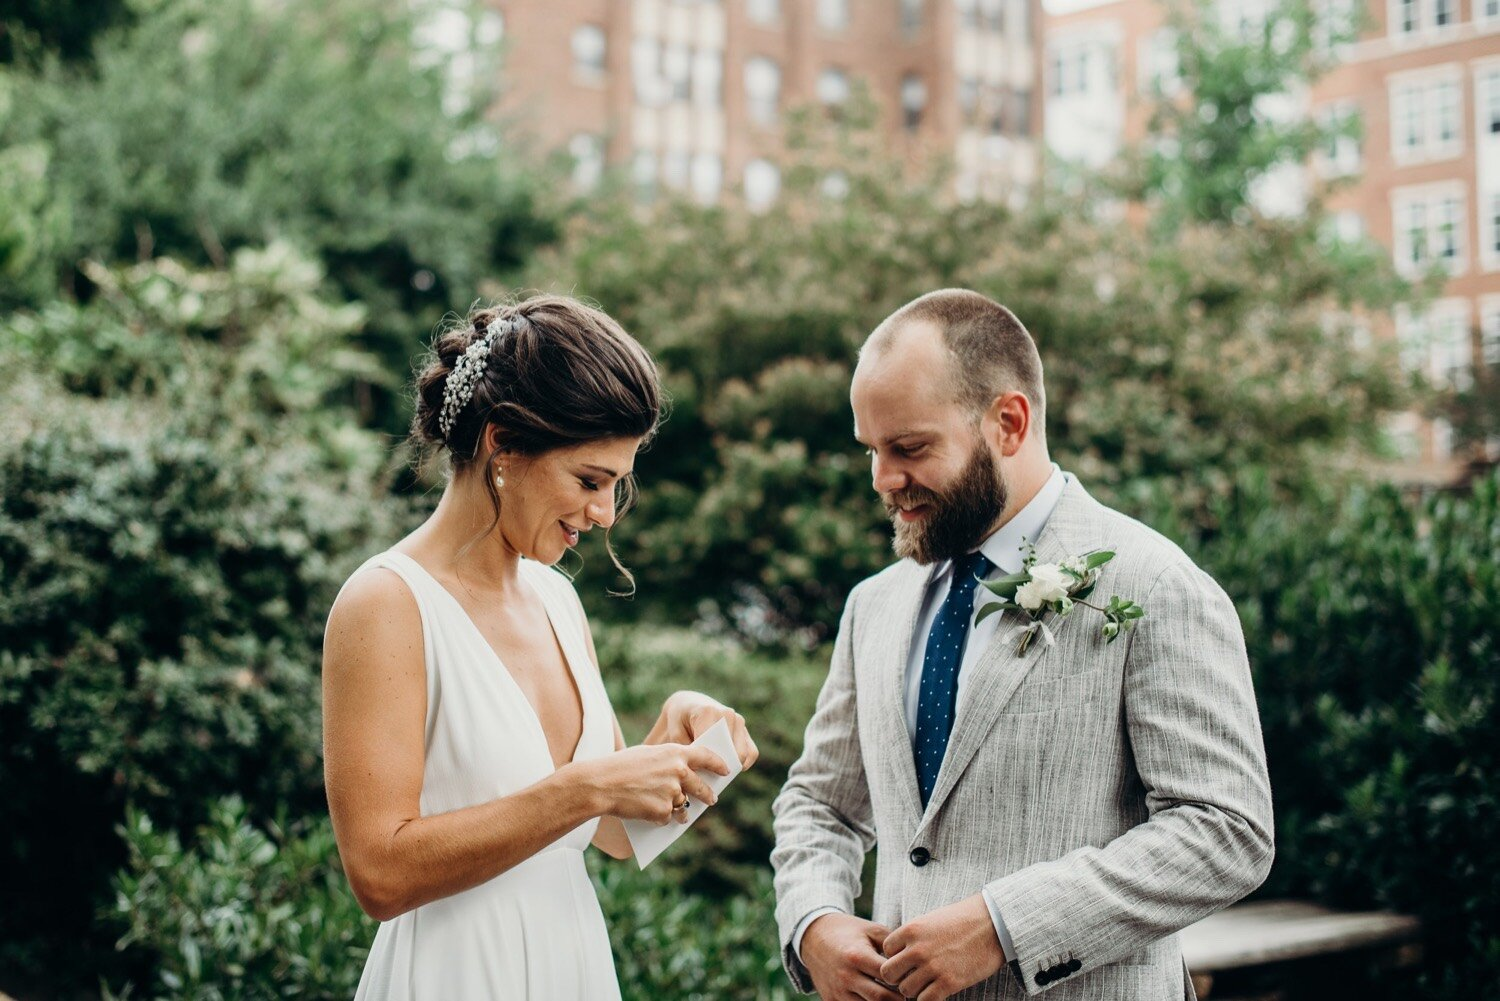 18_photographer_wedding_look_meridian_park_dc_washington_first_hill.jpg